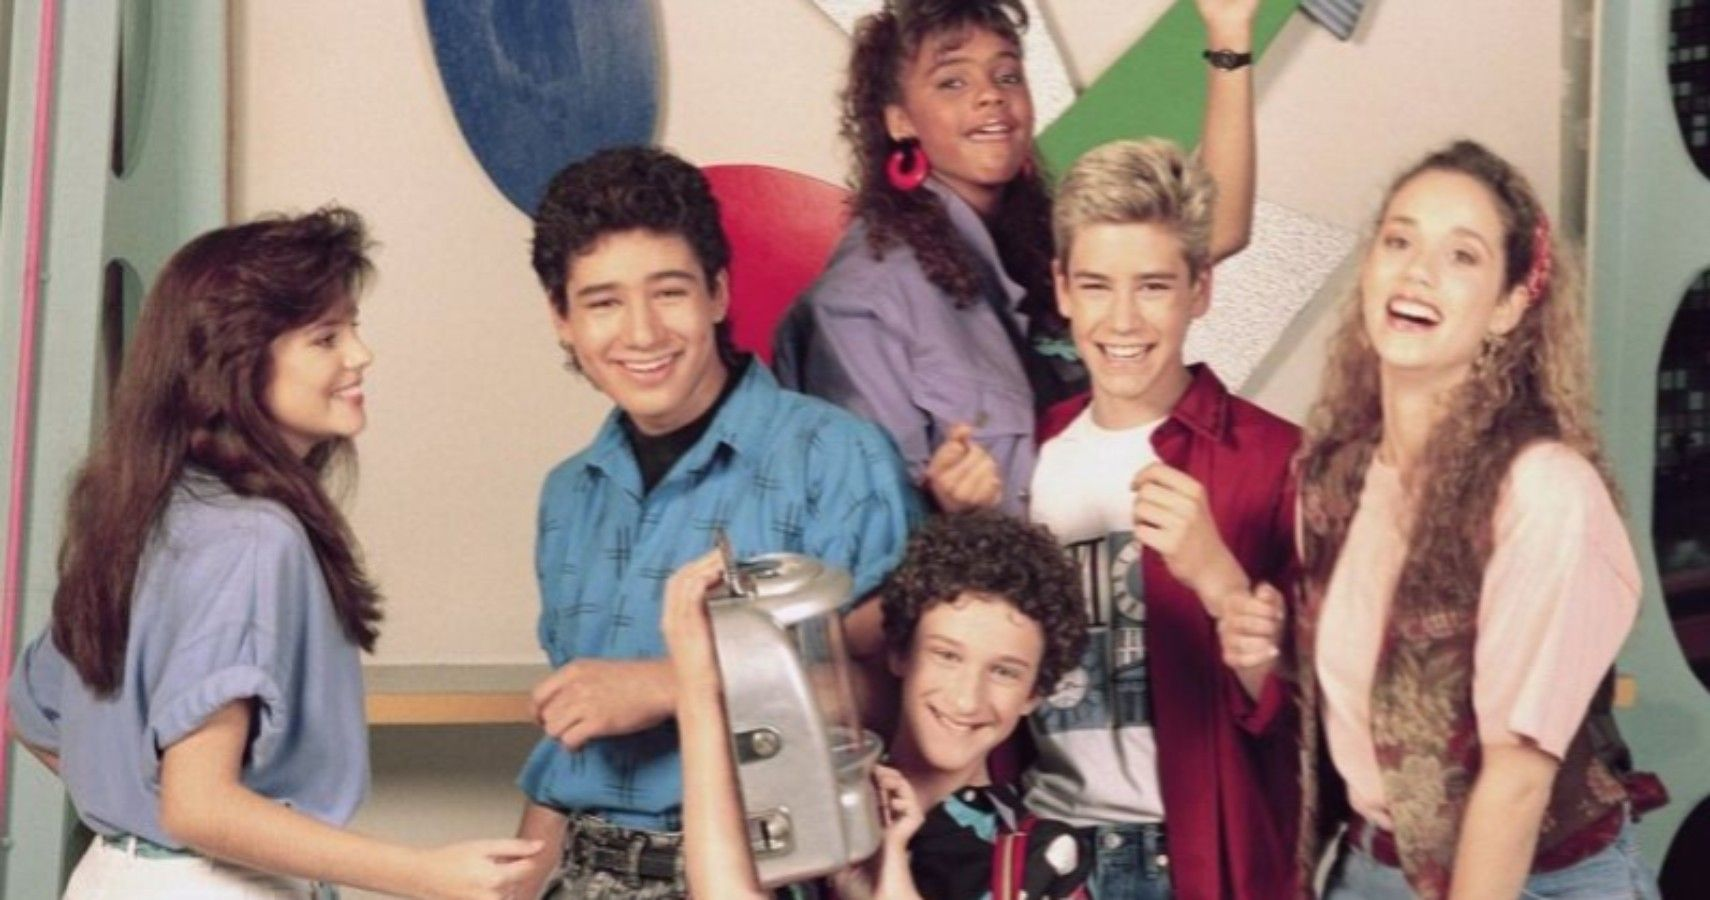 Saved by the bell cast now